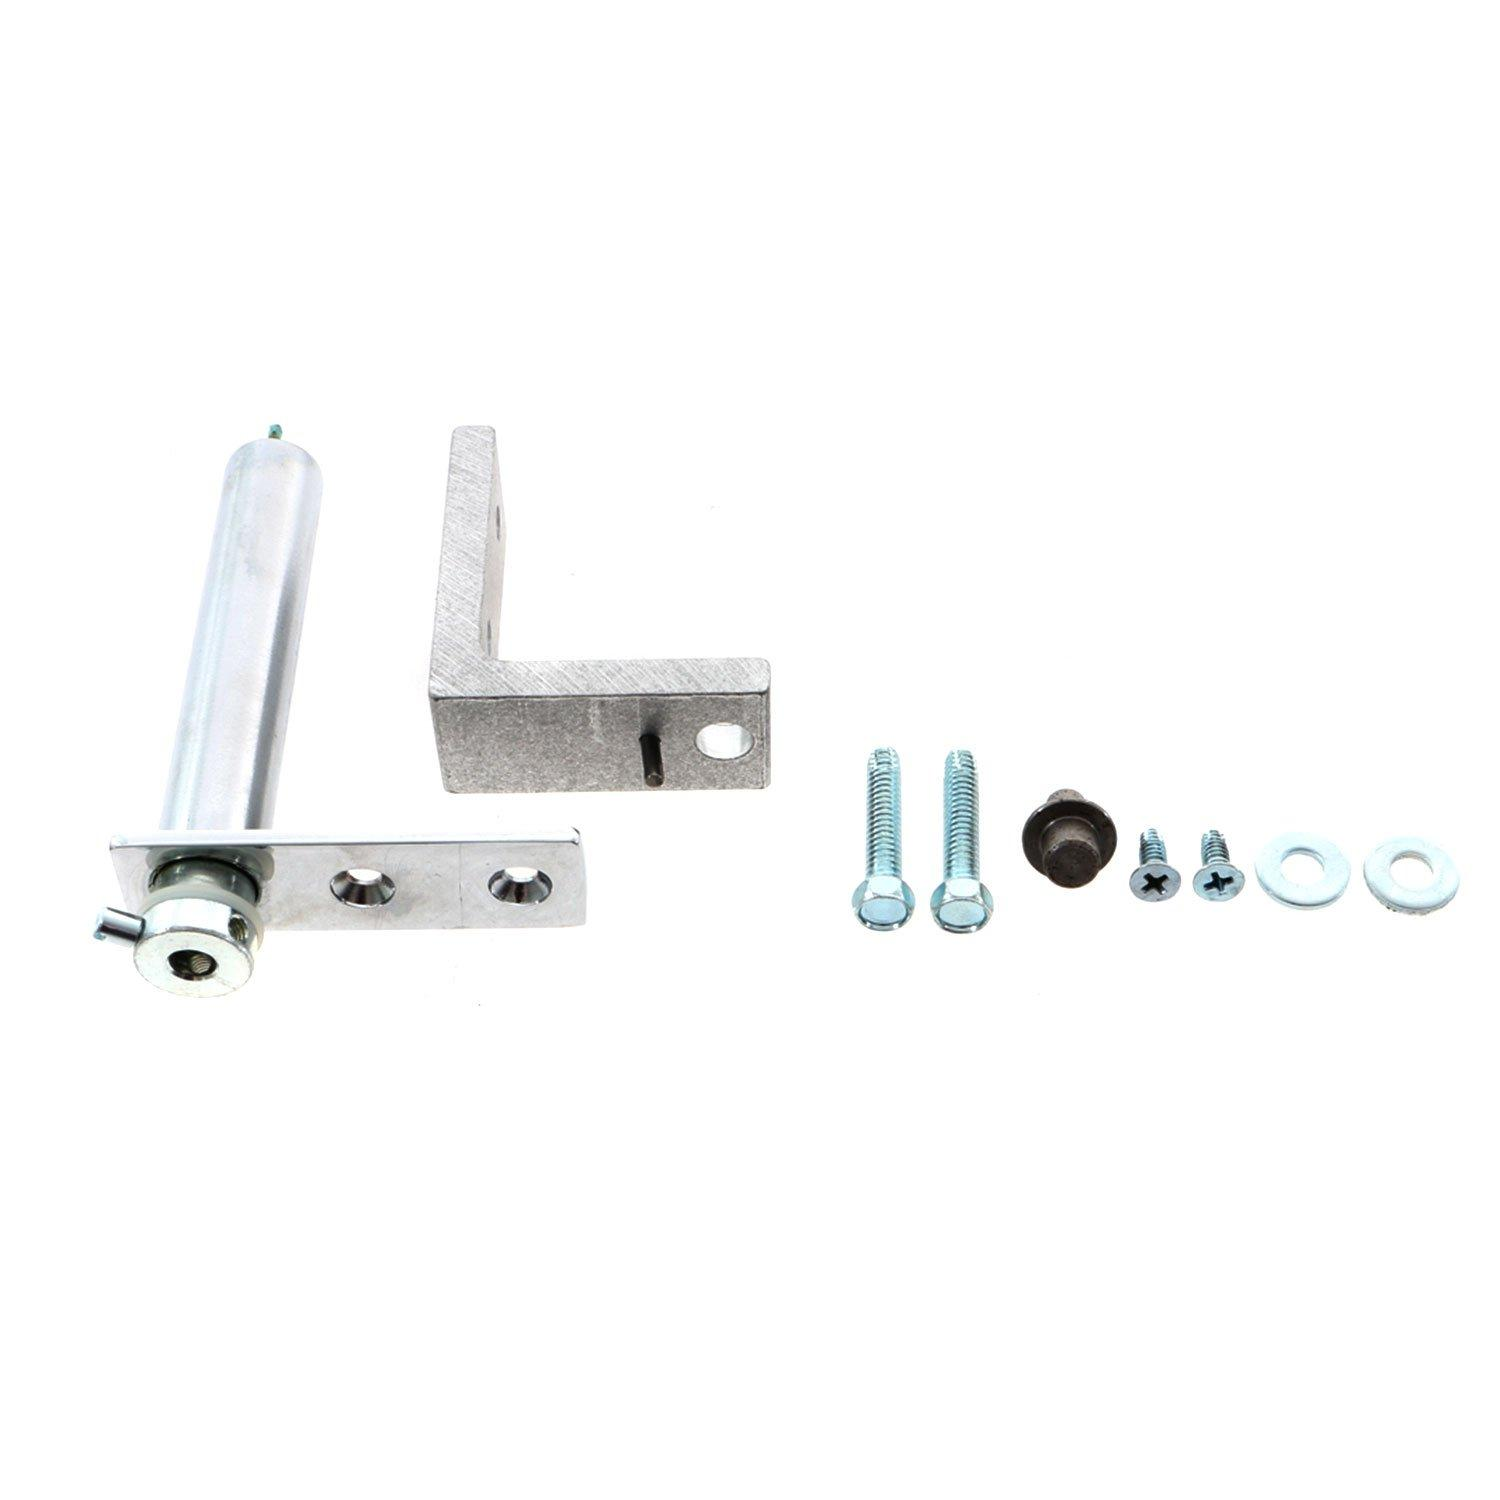 TRUE HINGE KIT DOOR TOP LH T-G W/ CARTRIDGE HINGE